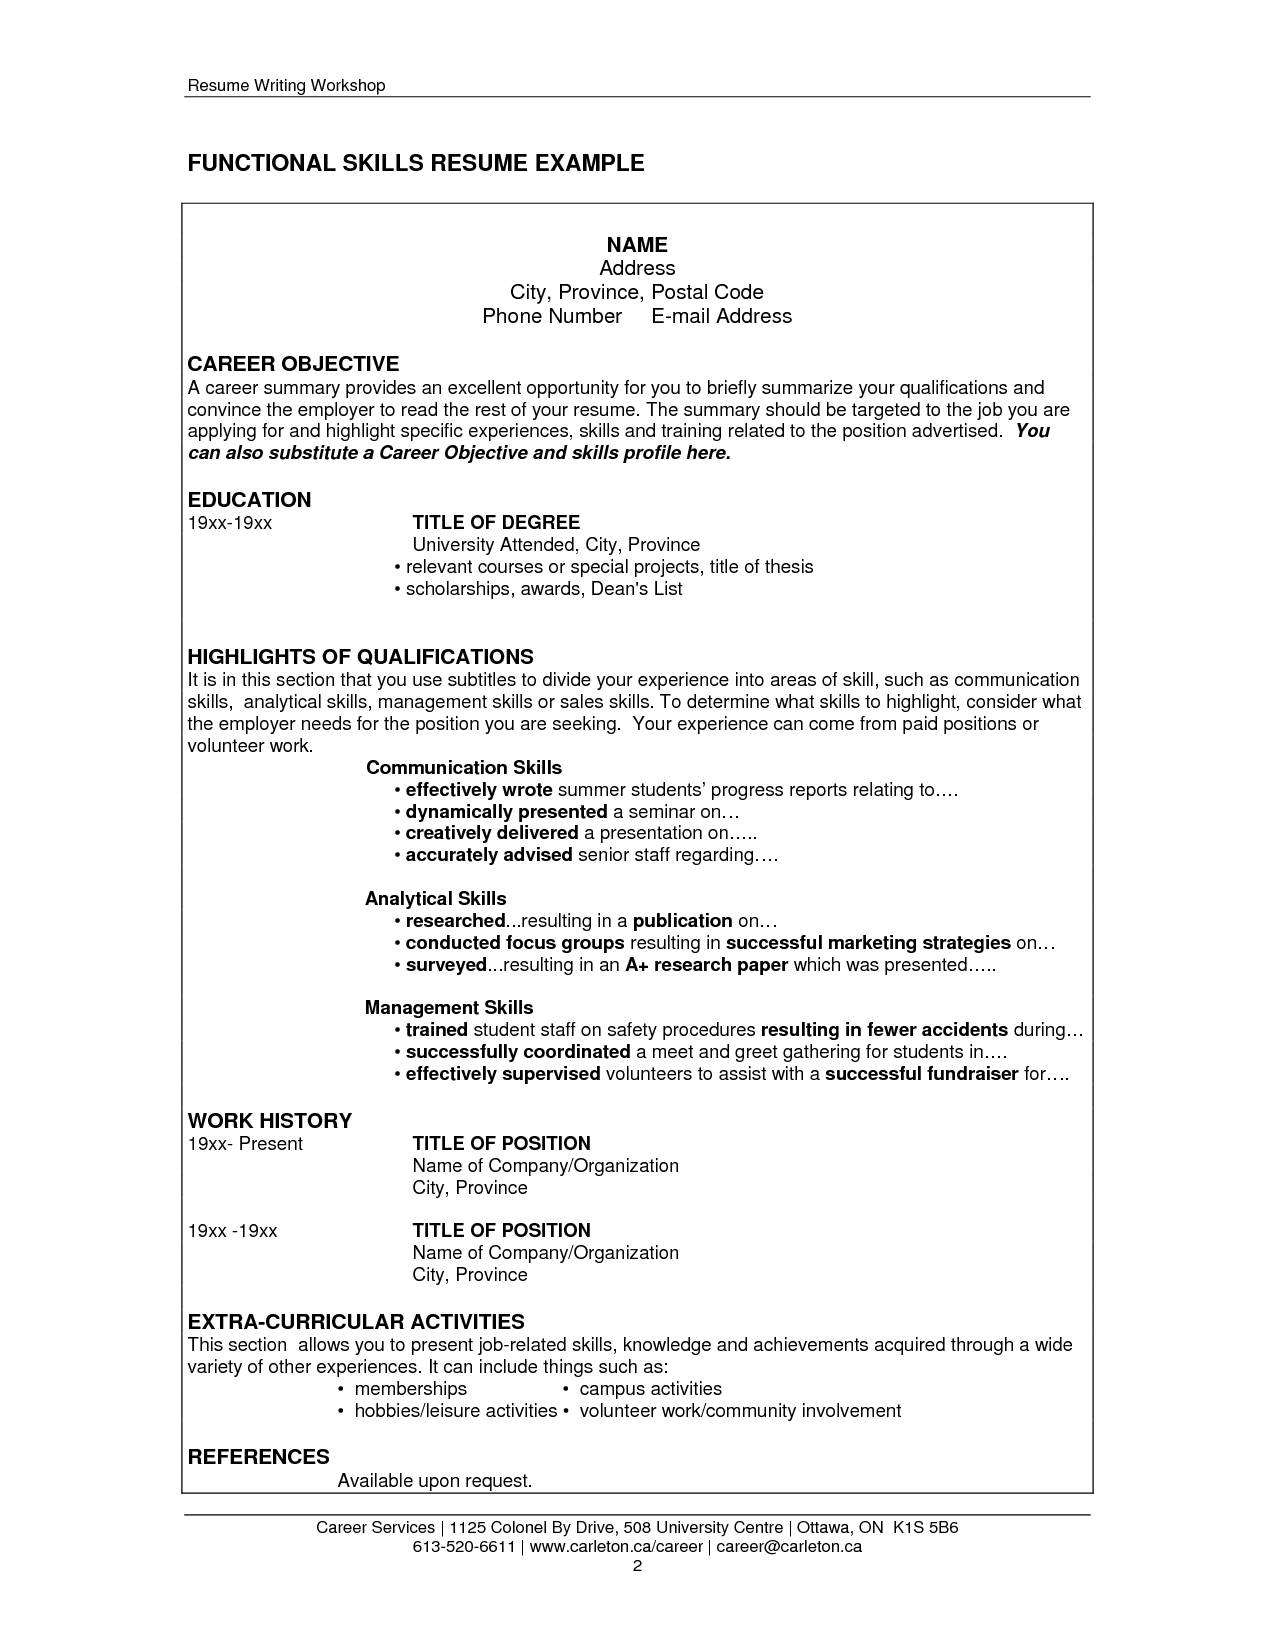 Sample Key Skills For Resume Resume Sample Of Skills And Abilities Resume Sample Of Skills And